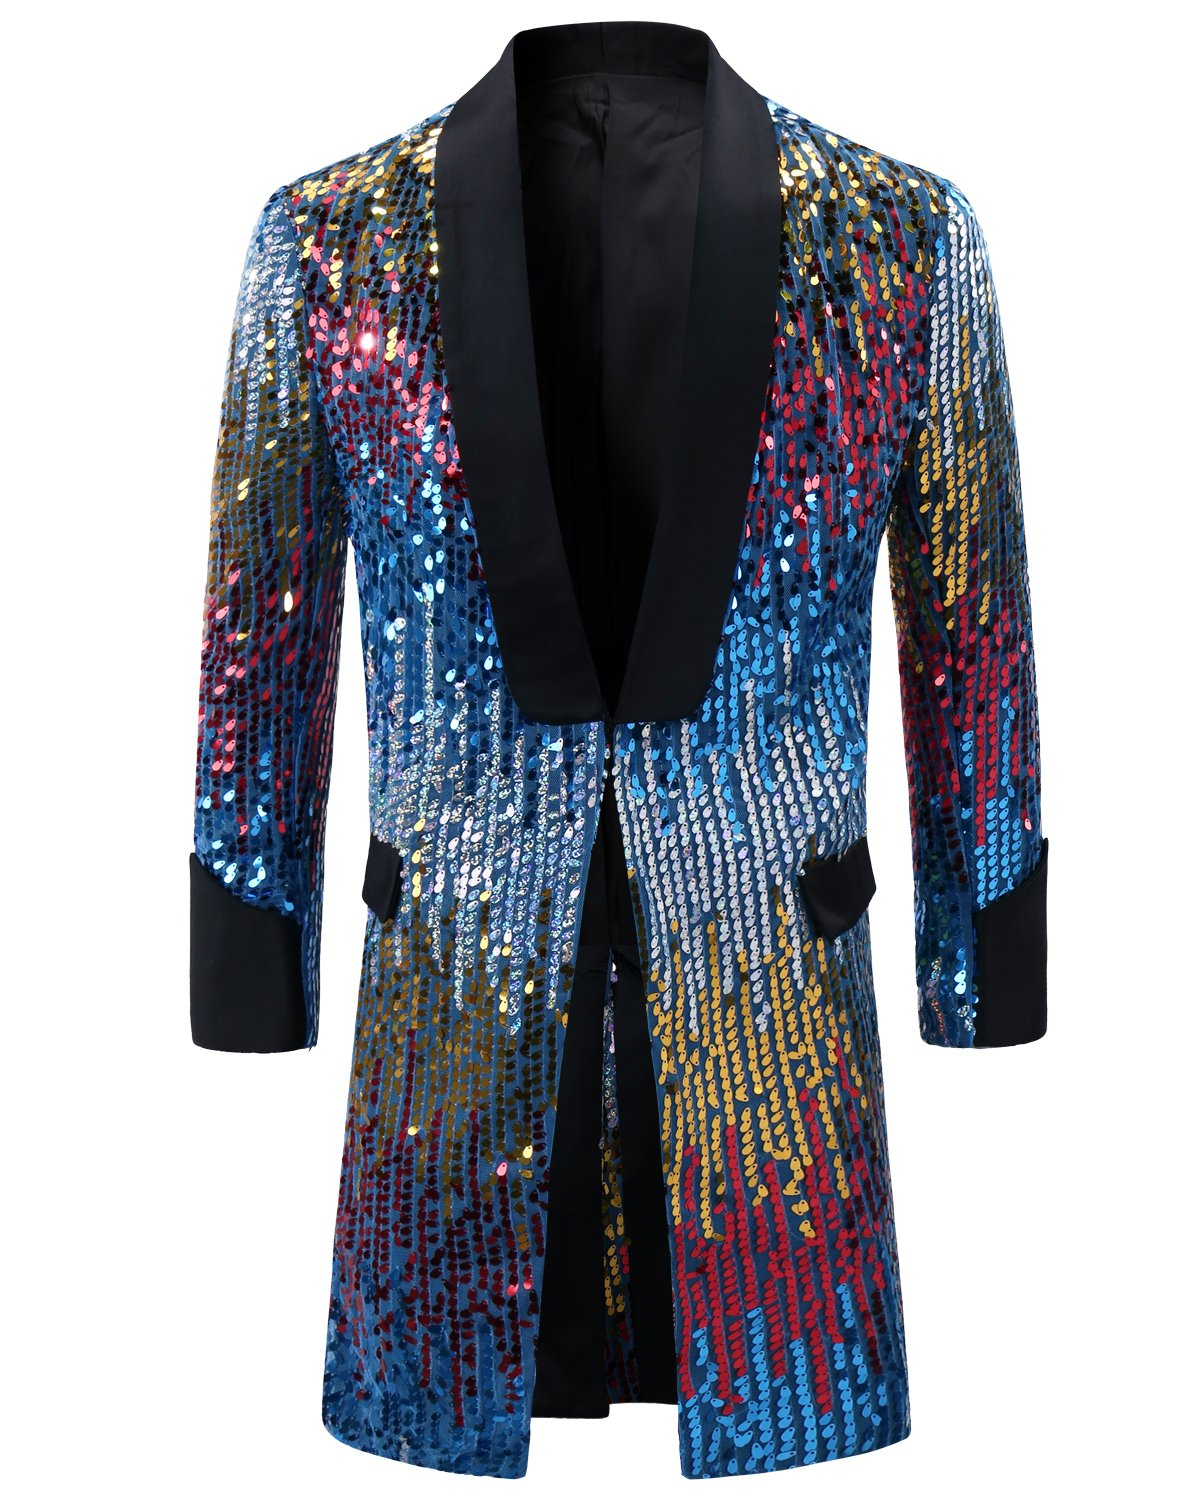 Cloudstyle Mens Tuxedo Single-Breasted Party Show Suit Sequins Punk Jacket Blazer Blue Medium